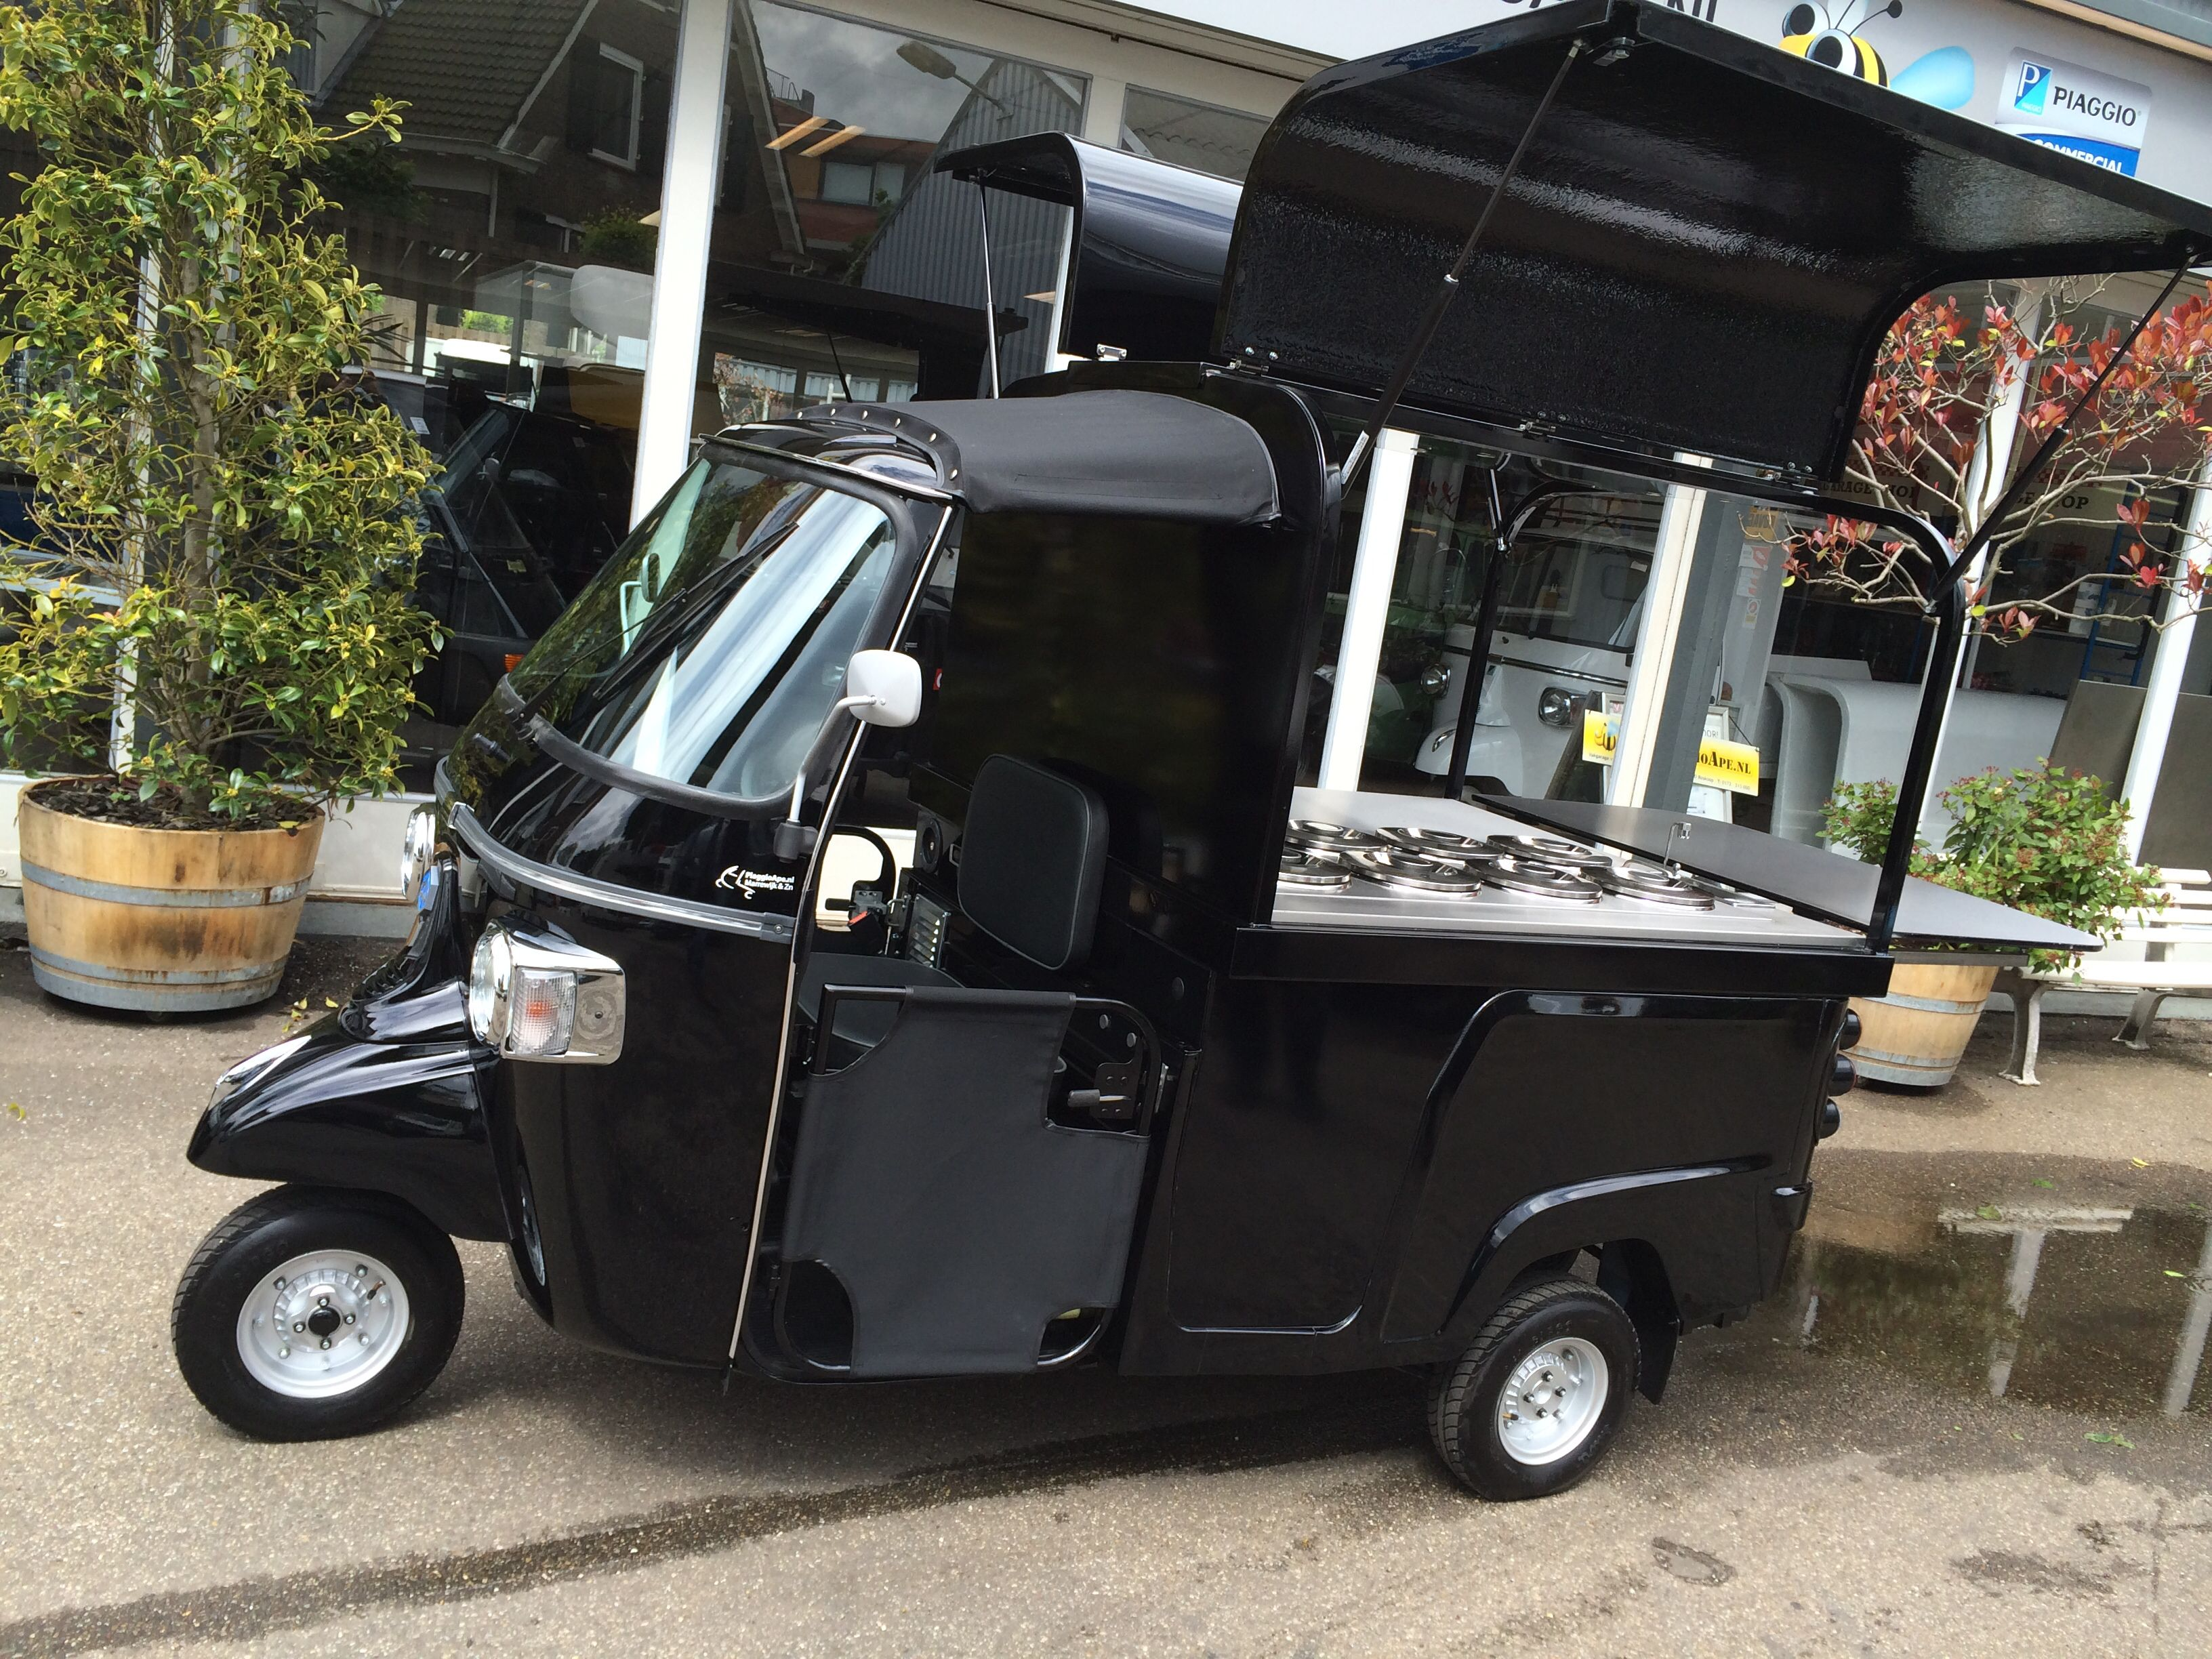 piaggio ape calessino 200 fly with ice-cream unit | piaggio ape